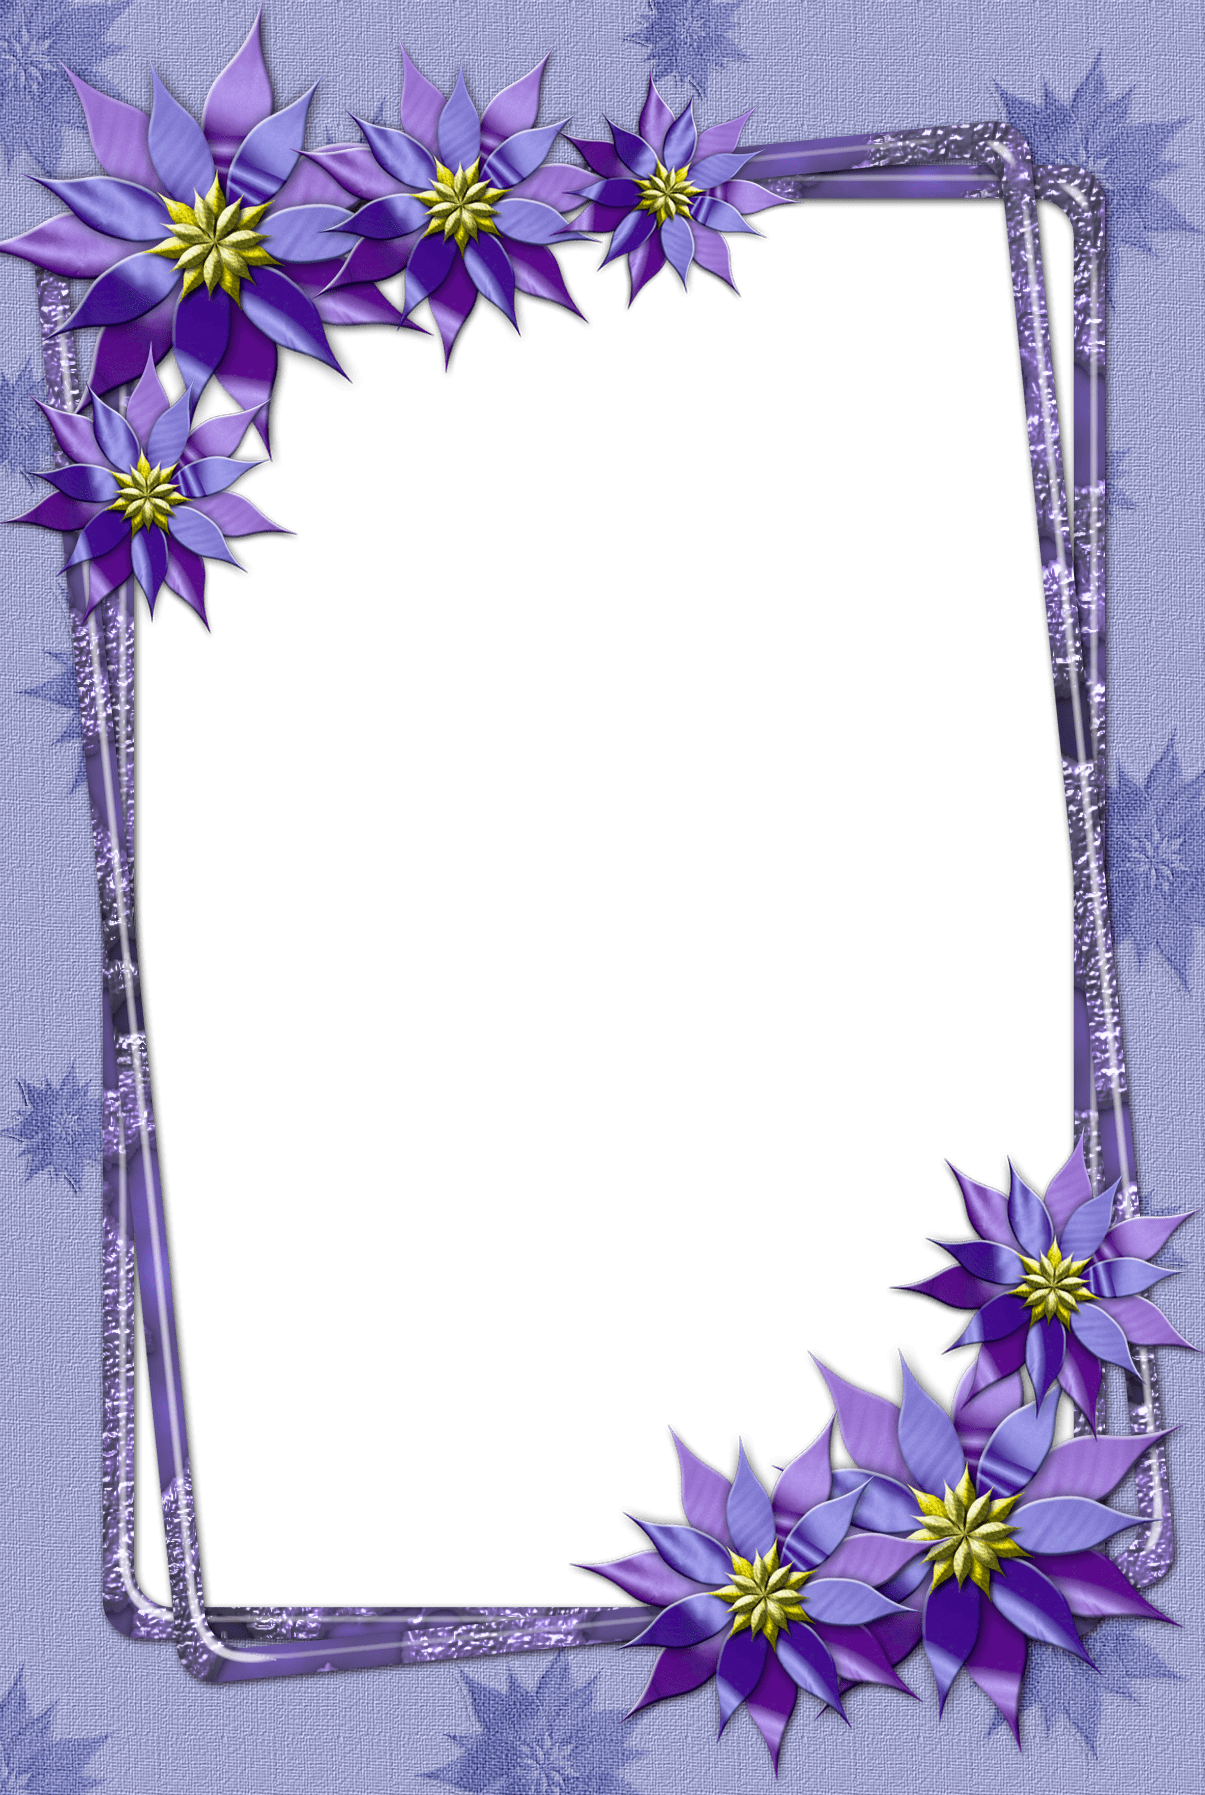 Purple Flower Transparent Frame Rzeczy do kupienia